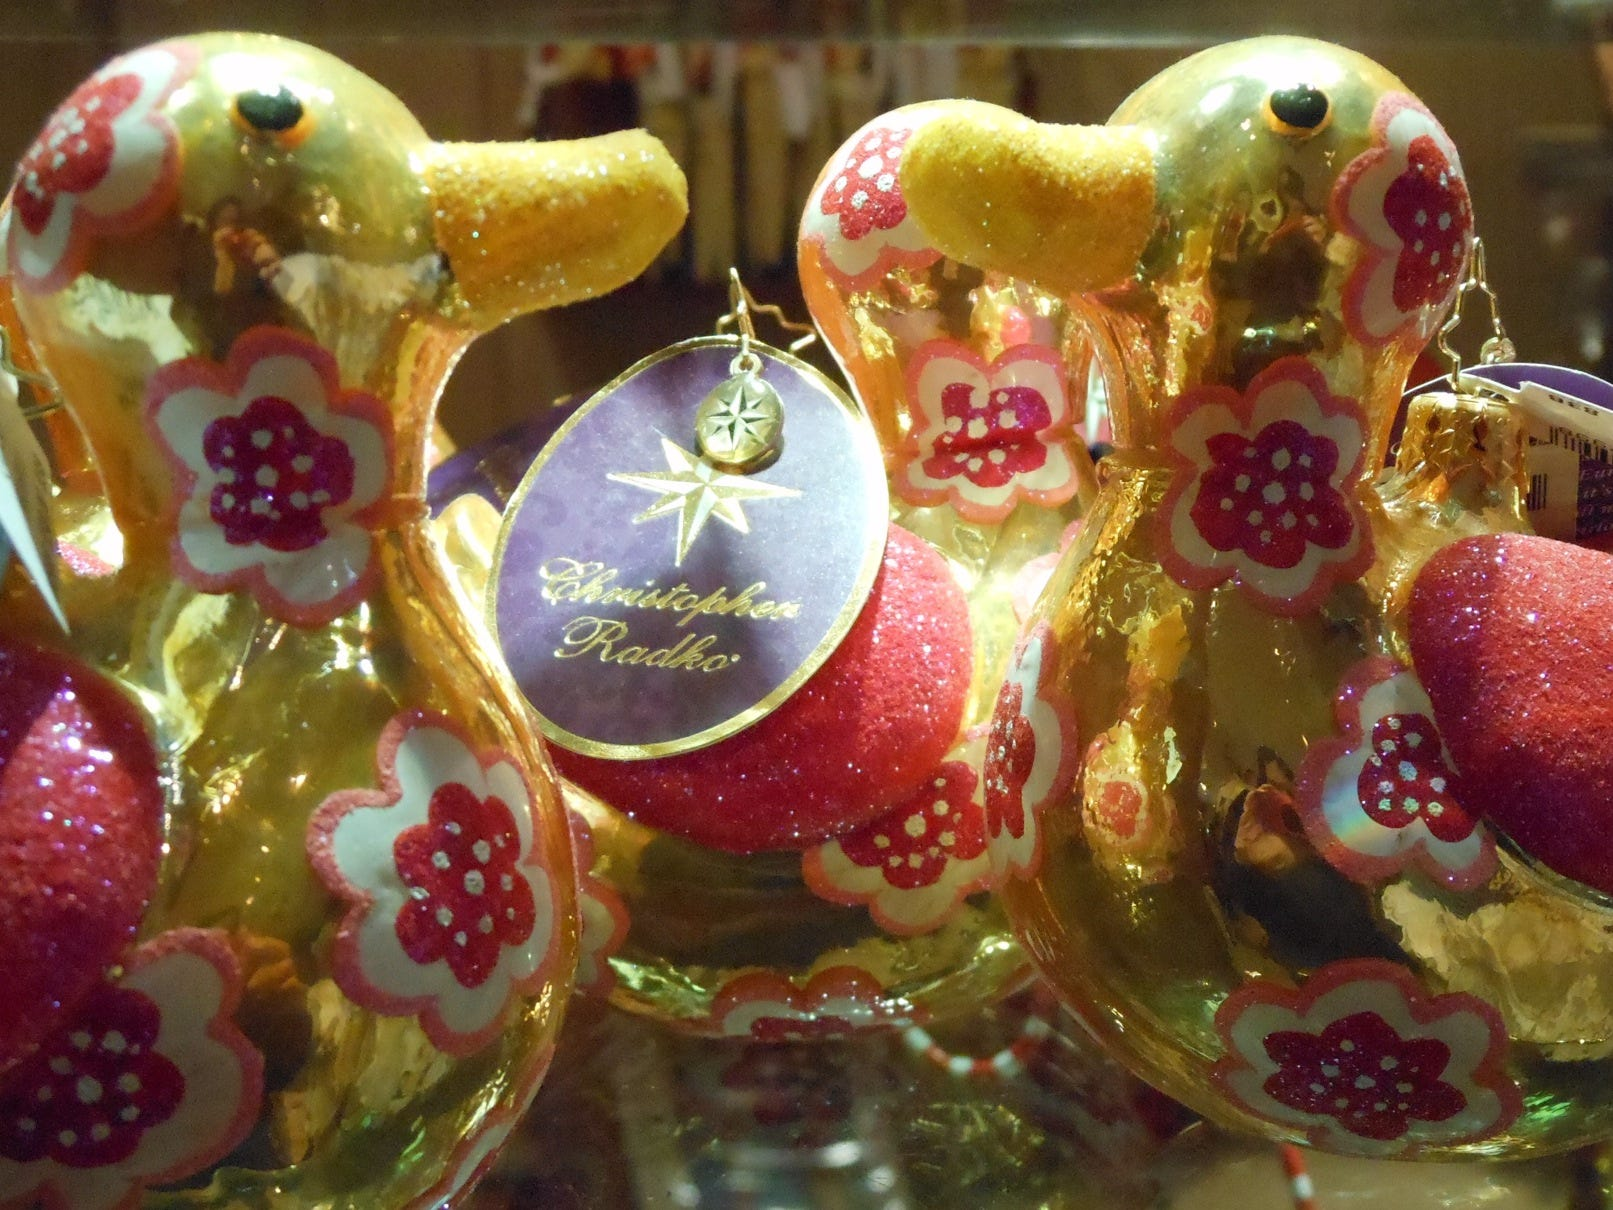 Duck ornaments, here Dec. 20, 2013, are for sale at a gift shop in the lobby of The Peabody Hotel in Memphis.